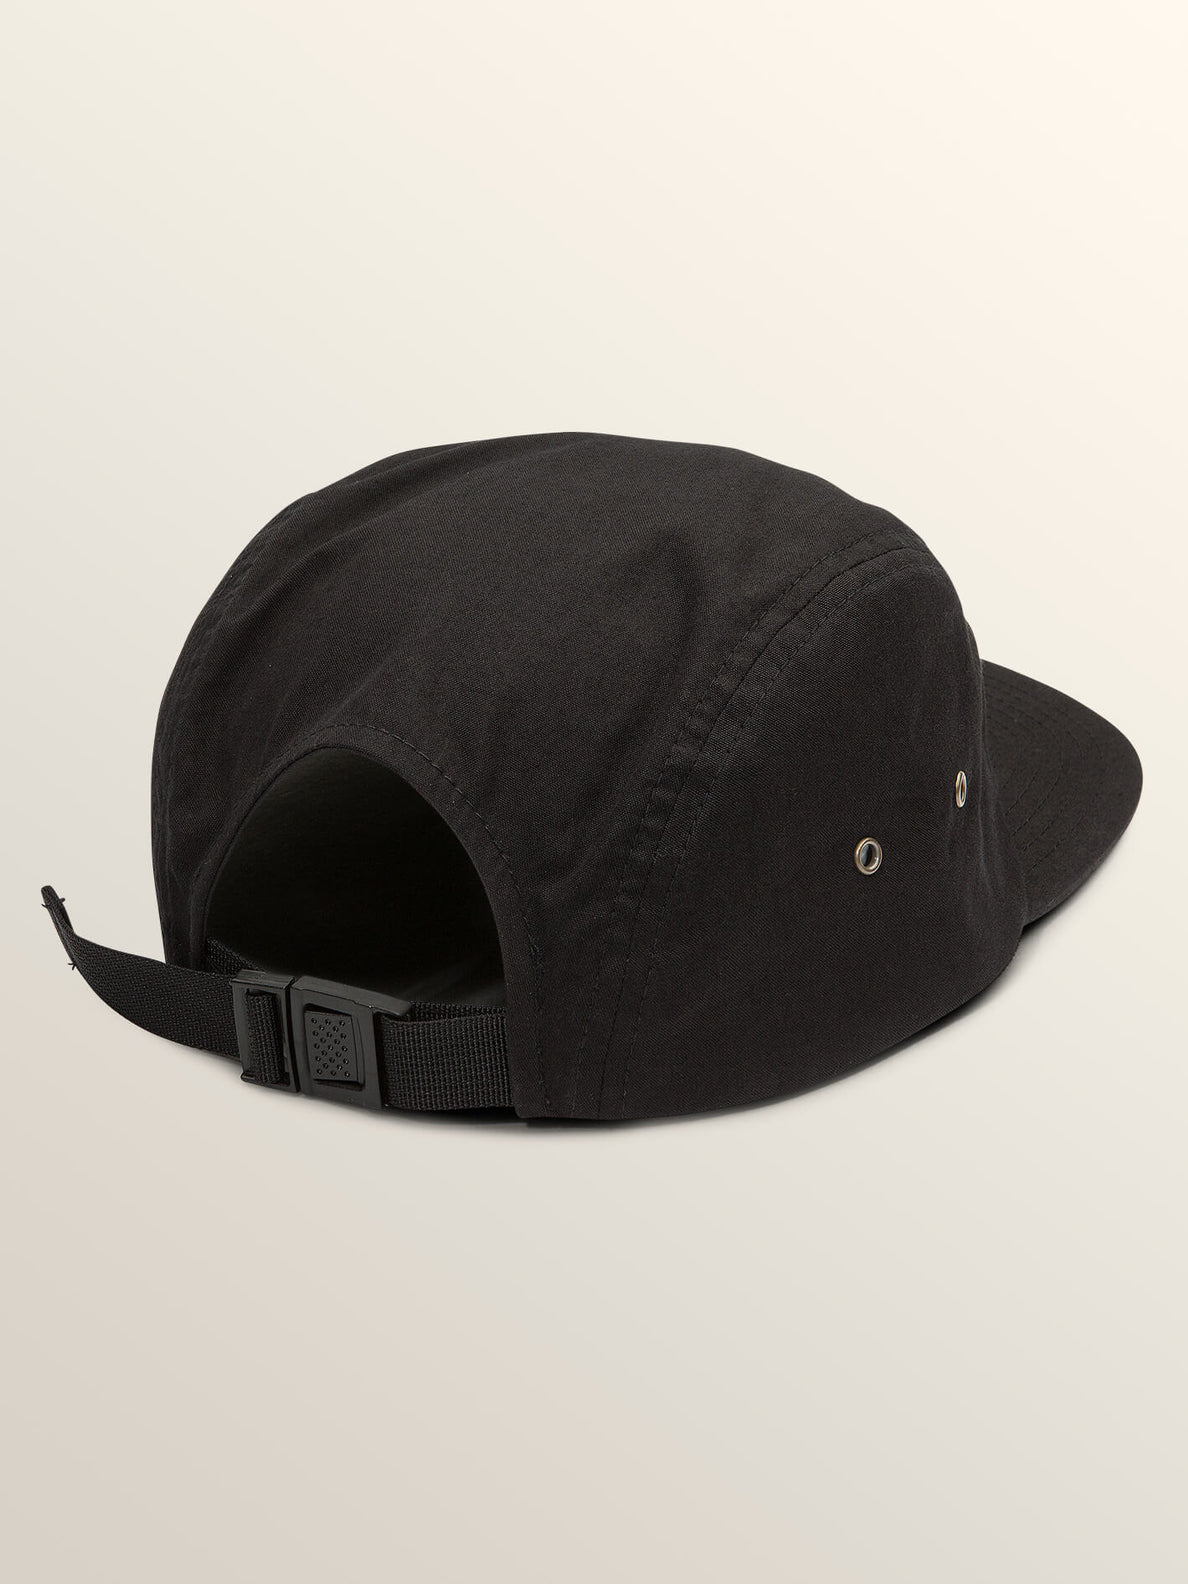 Hot Visions Hat In Black, Back View